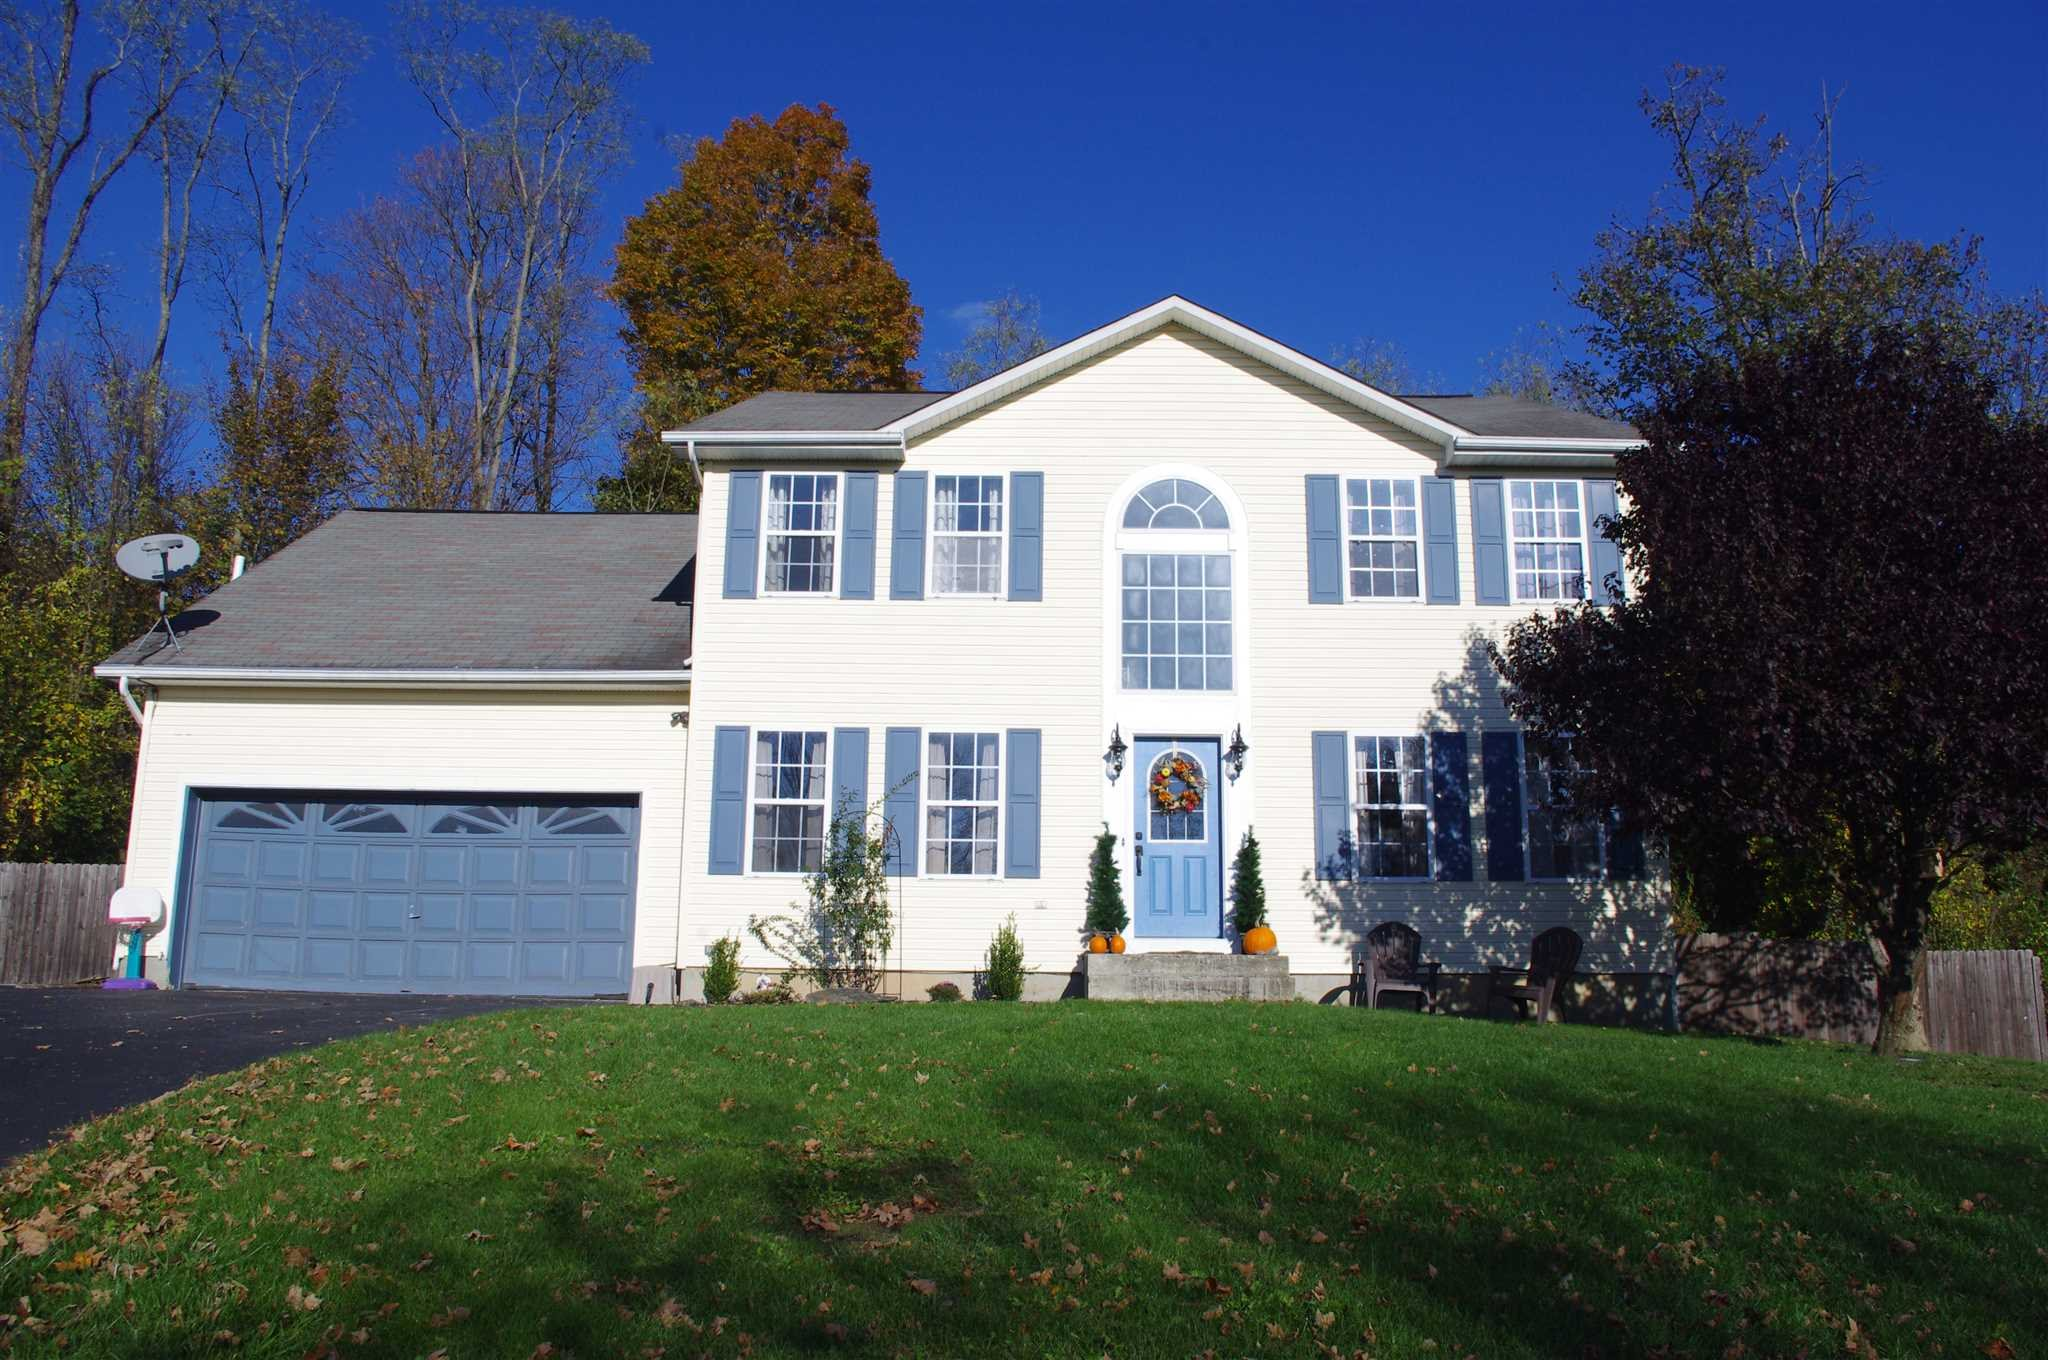 Single Family Home for Sale at 11 WOODCREST Court 11 WOODCREST Court Fishkill, New York 12590 United States